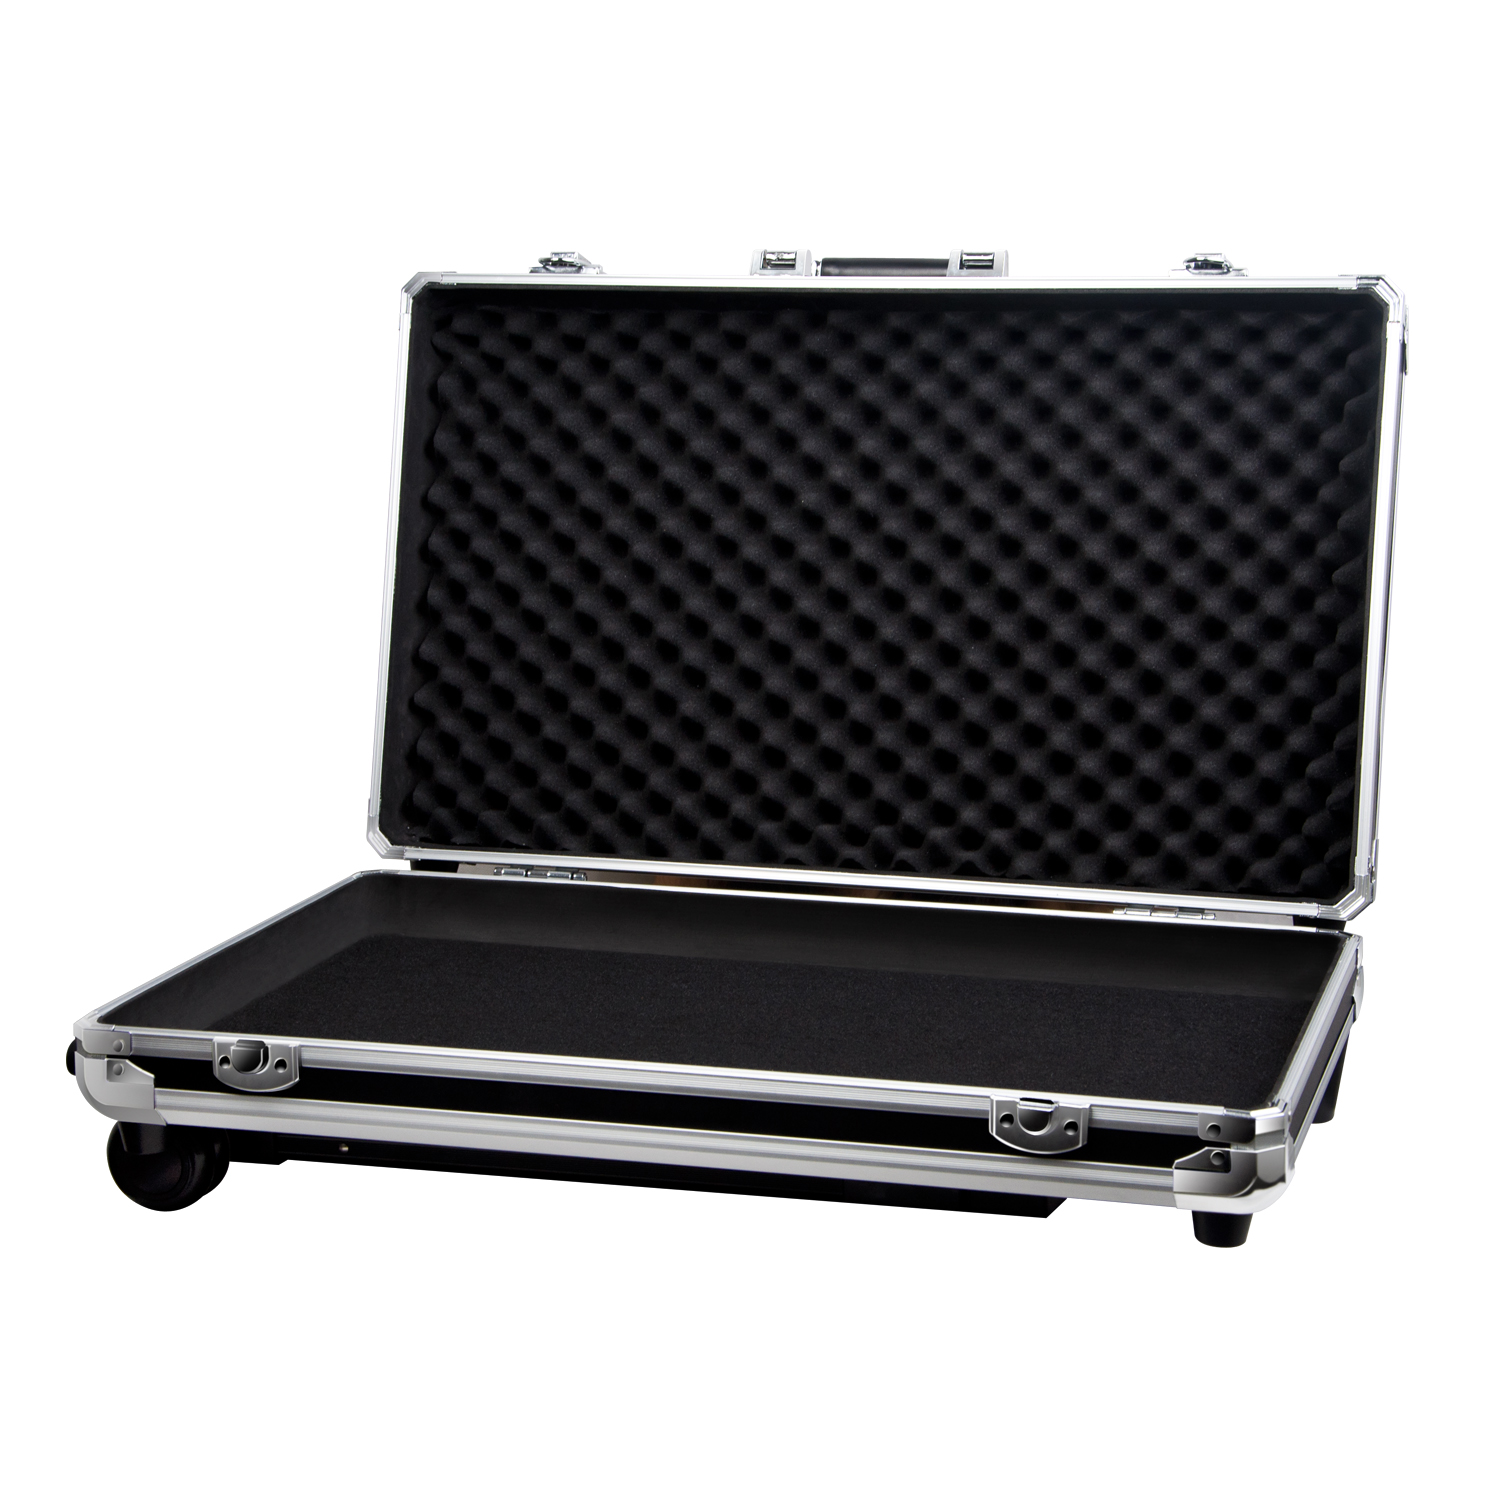 [JOYO-RD-3-Coupe-Driver-RockDriver-Series-Pedal-Board-Flight-Trolley-Cases]